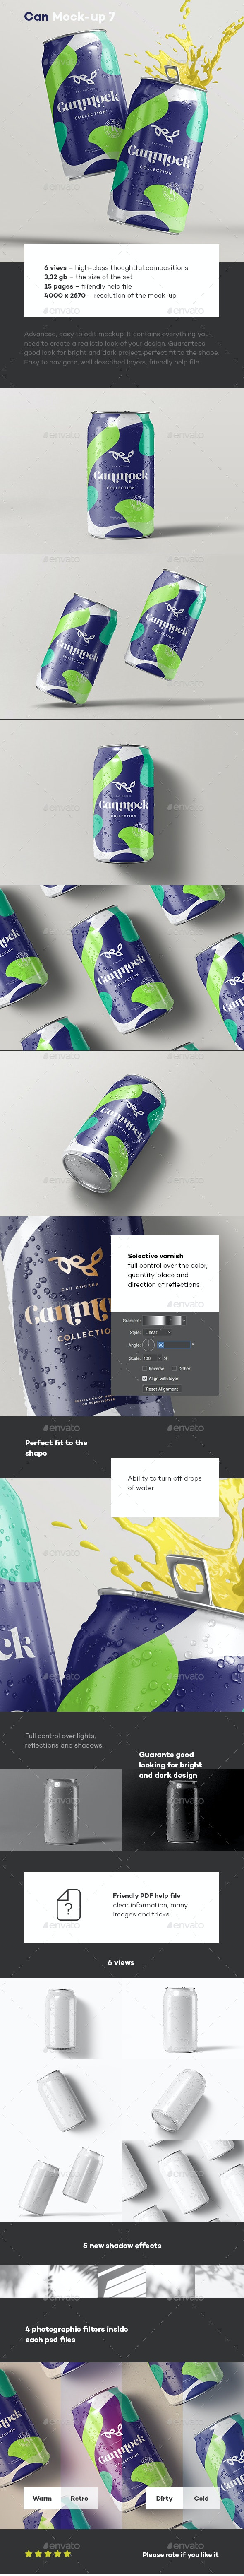 Can Mock-up 7 - Food and Drink Packaging